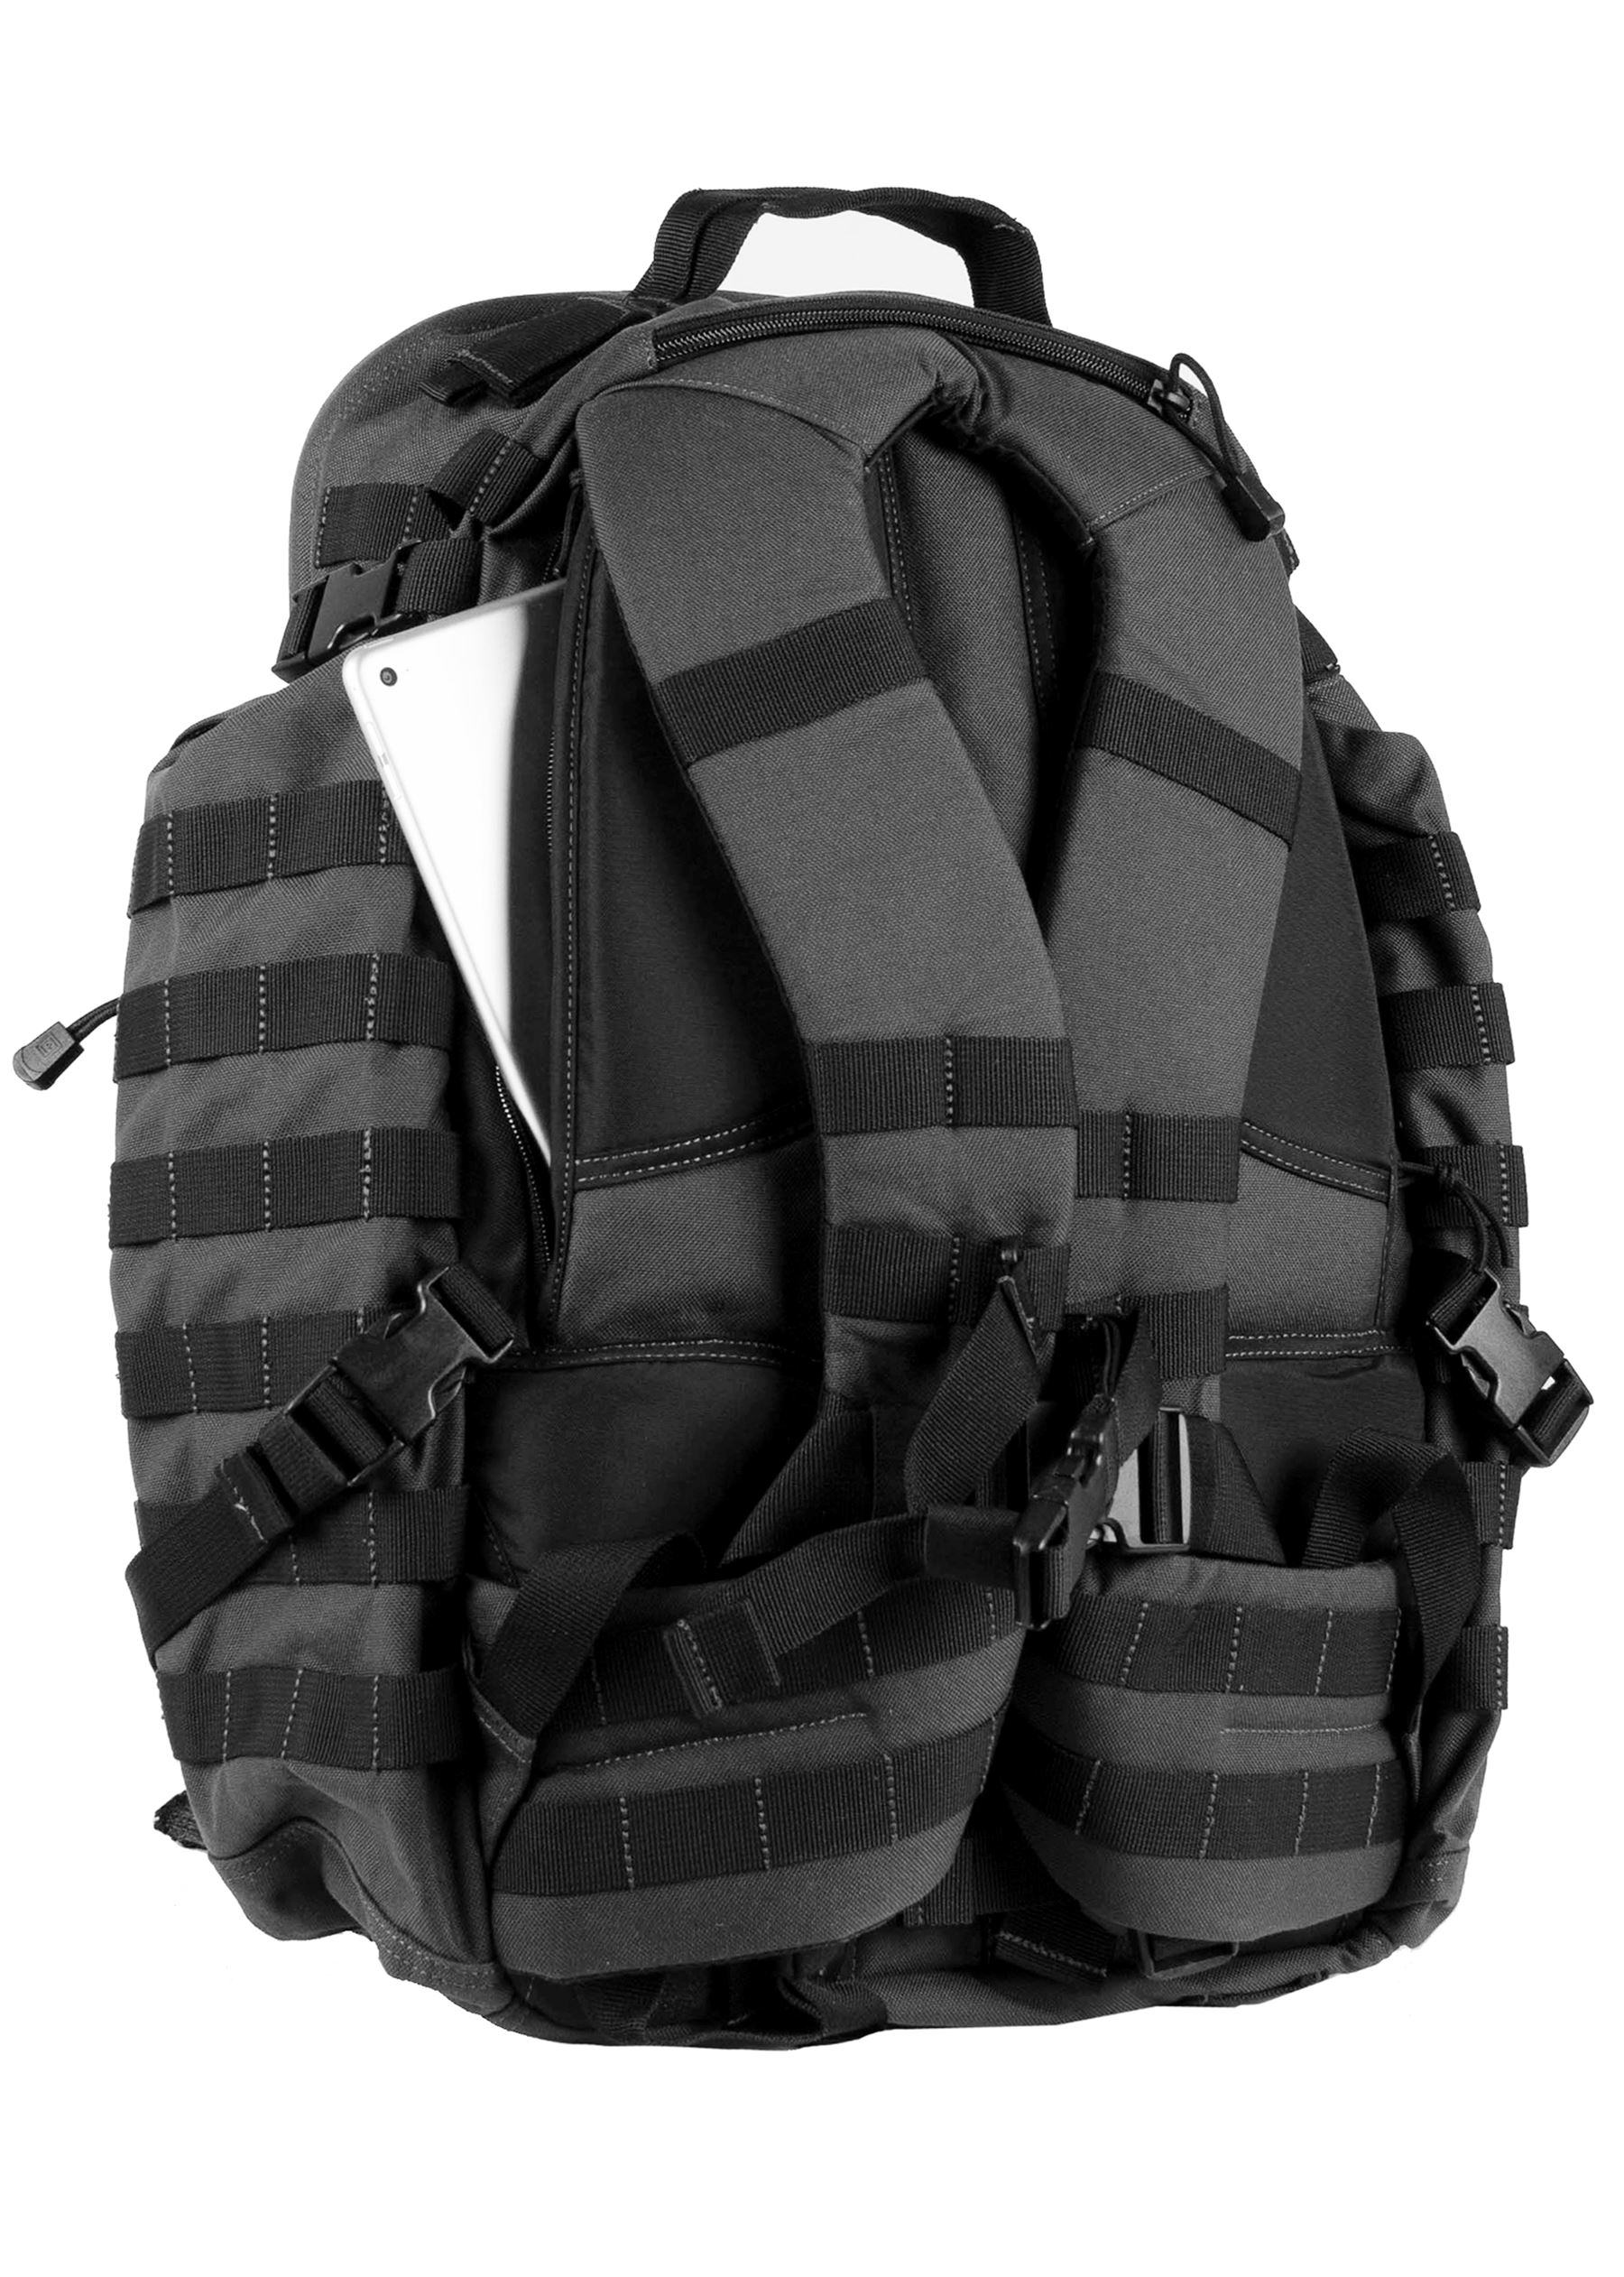 Rush72 backpack med polstret ryg og skulderstropper